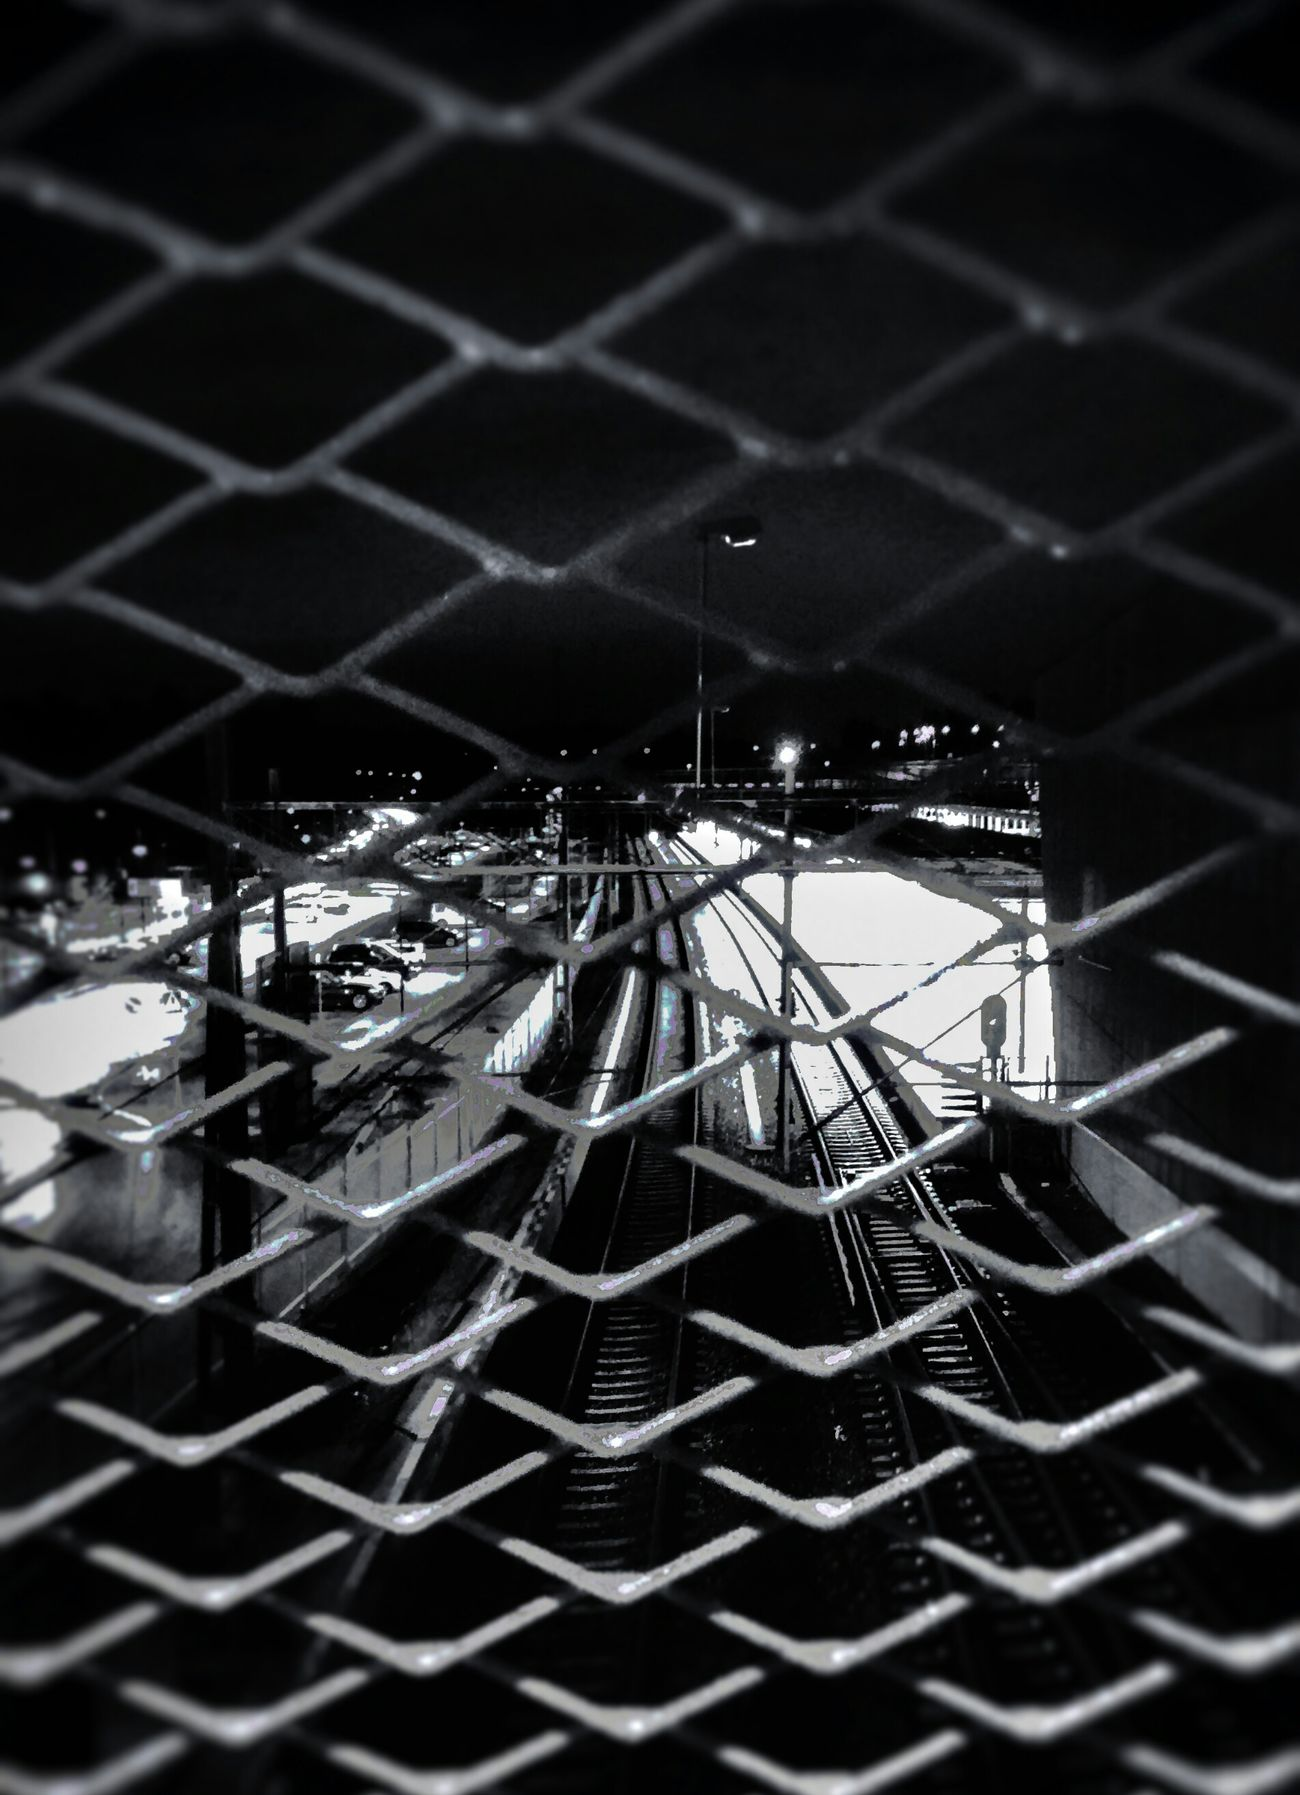 Trainstation Built Structure High Angle View Train Station Fences Streetviewphotography Streetphotography Black & White Photography Architecture Lights In The Dark City Outdoors